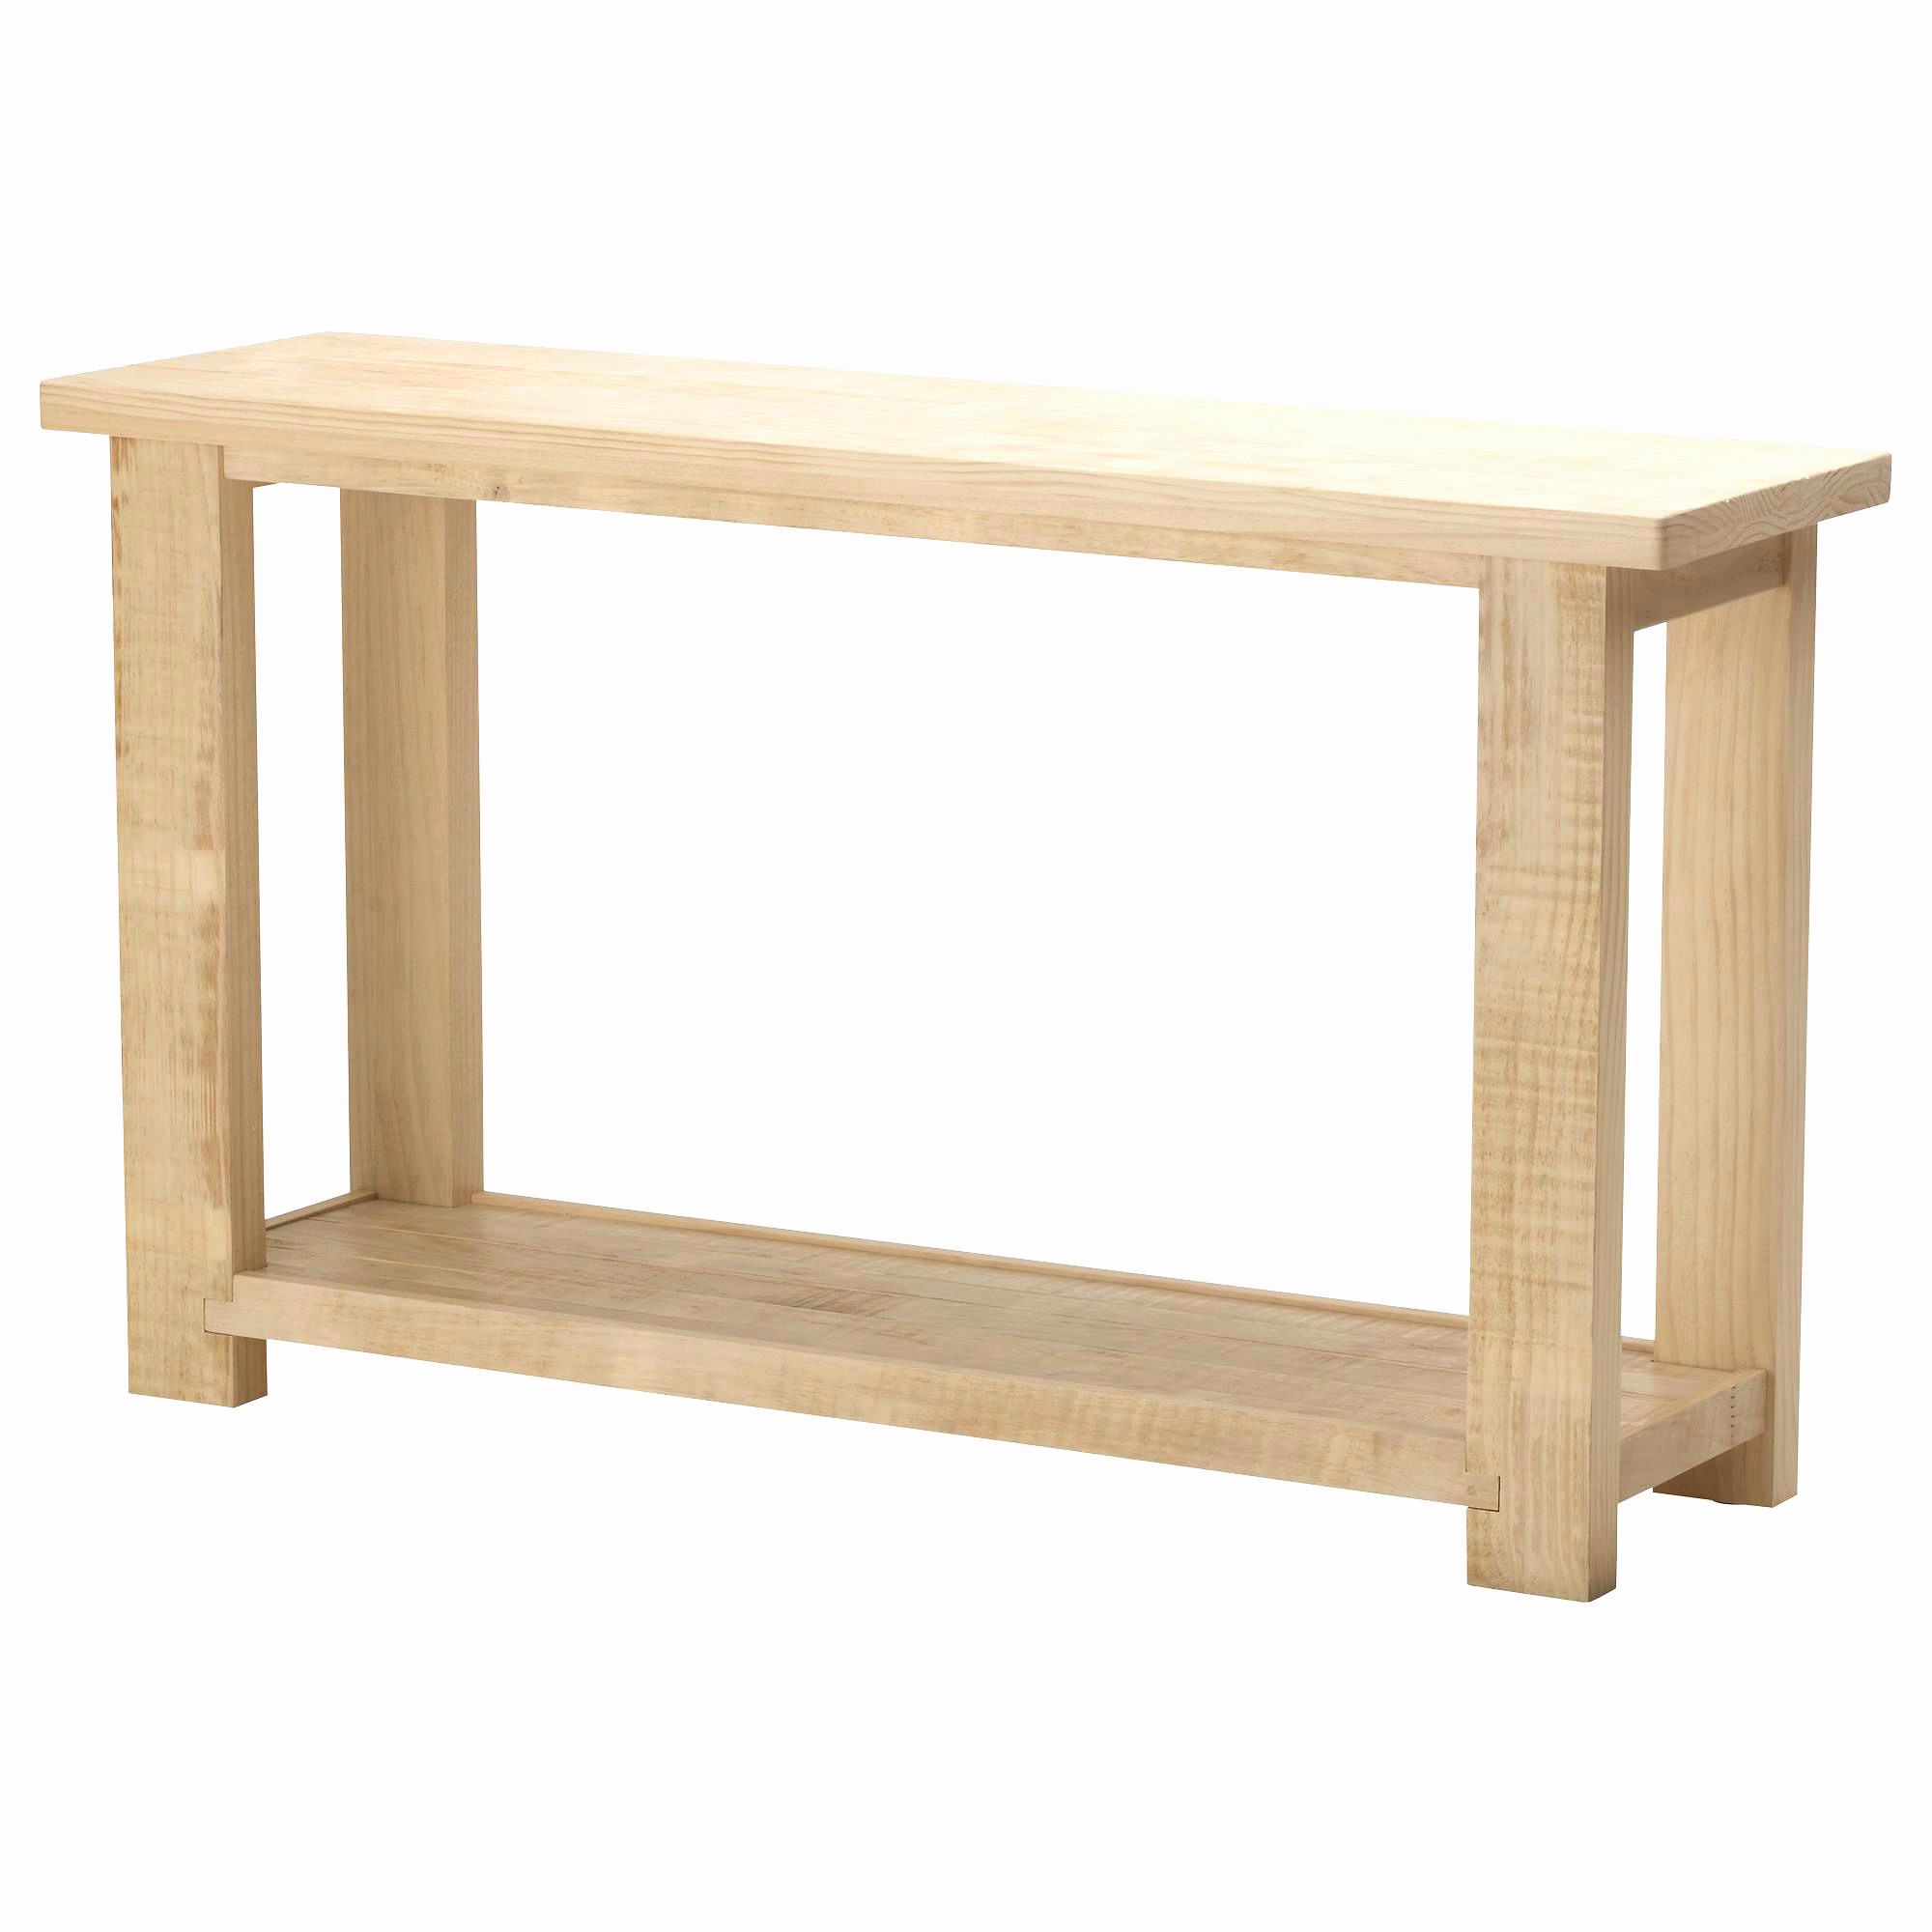 table basse relevable extensible ikea luxe tables de jardin table jardin extensible luxury alinea chaise 0d of table basse relevable extensible ikea